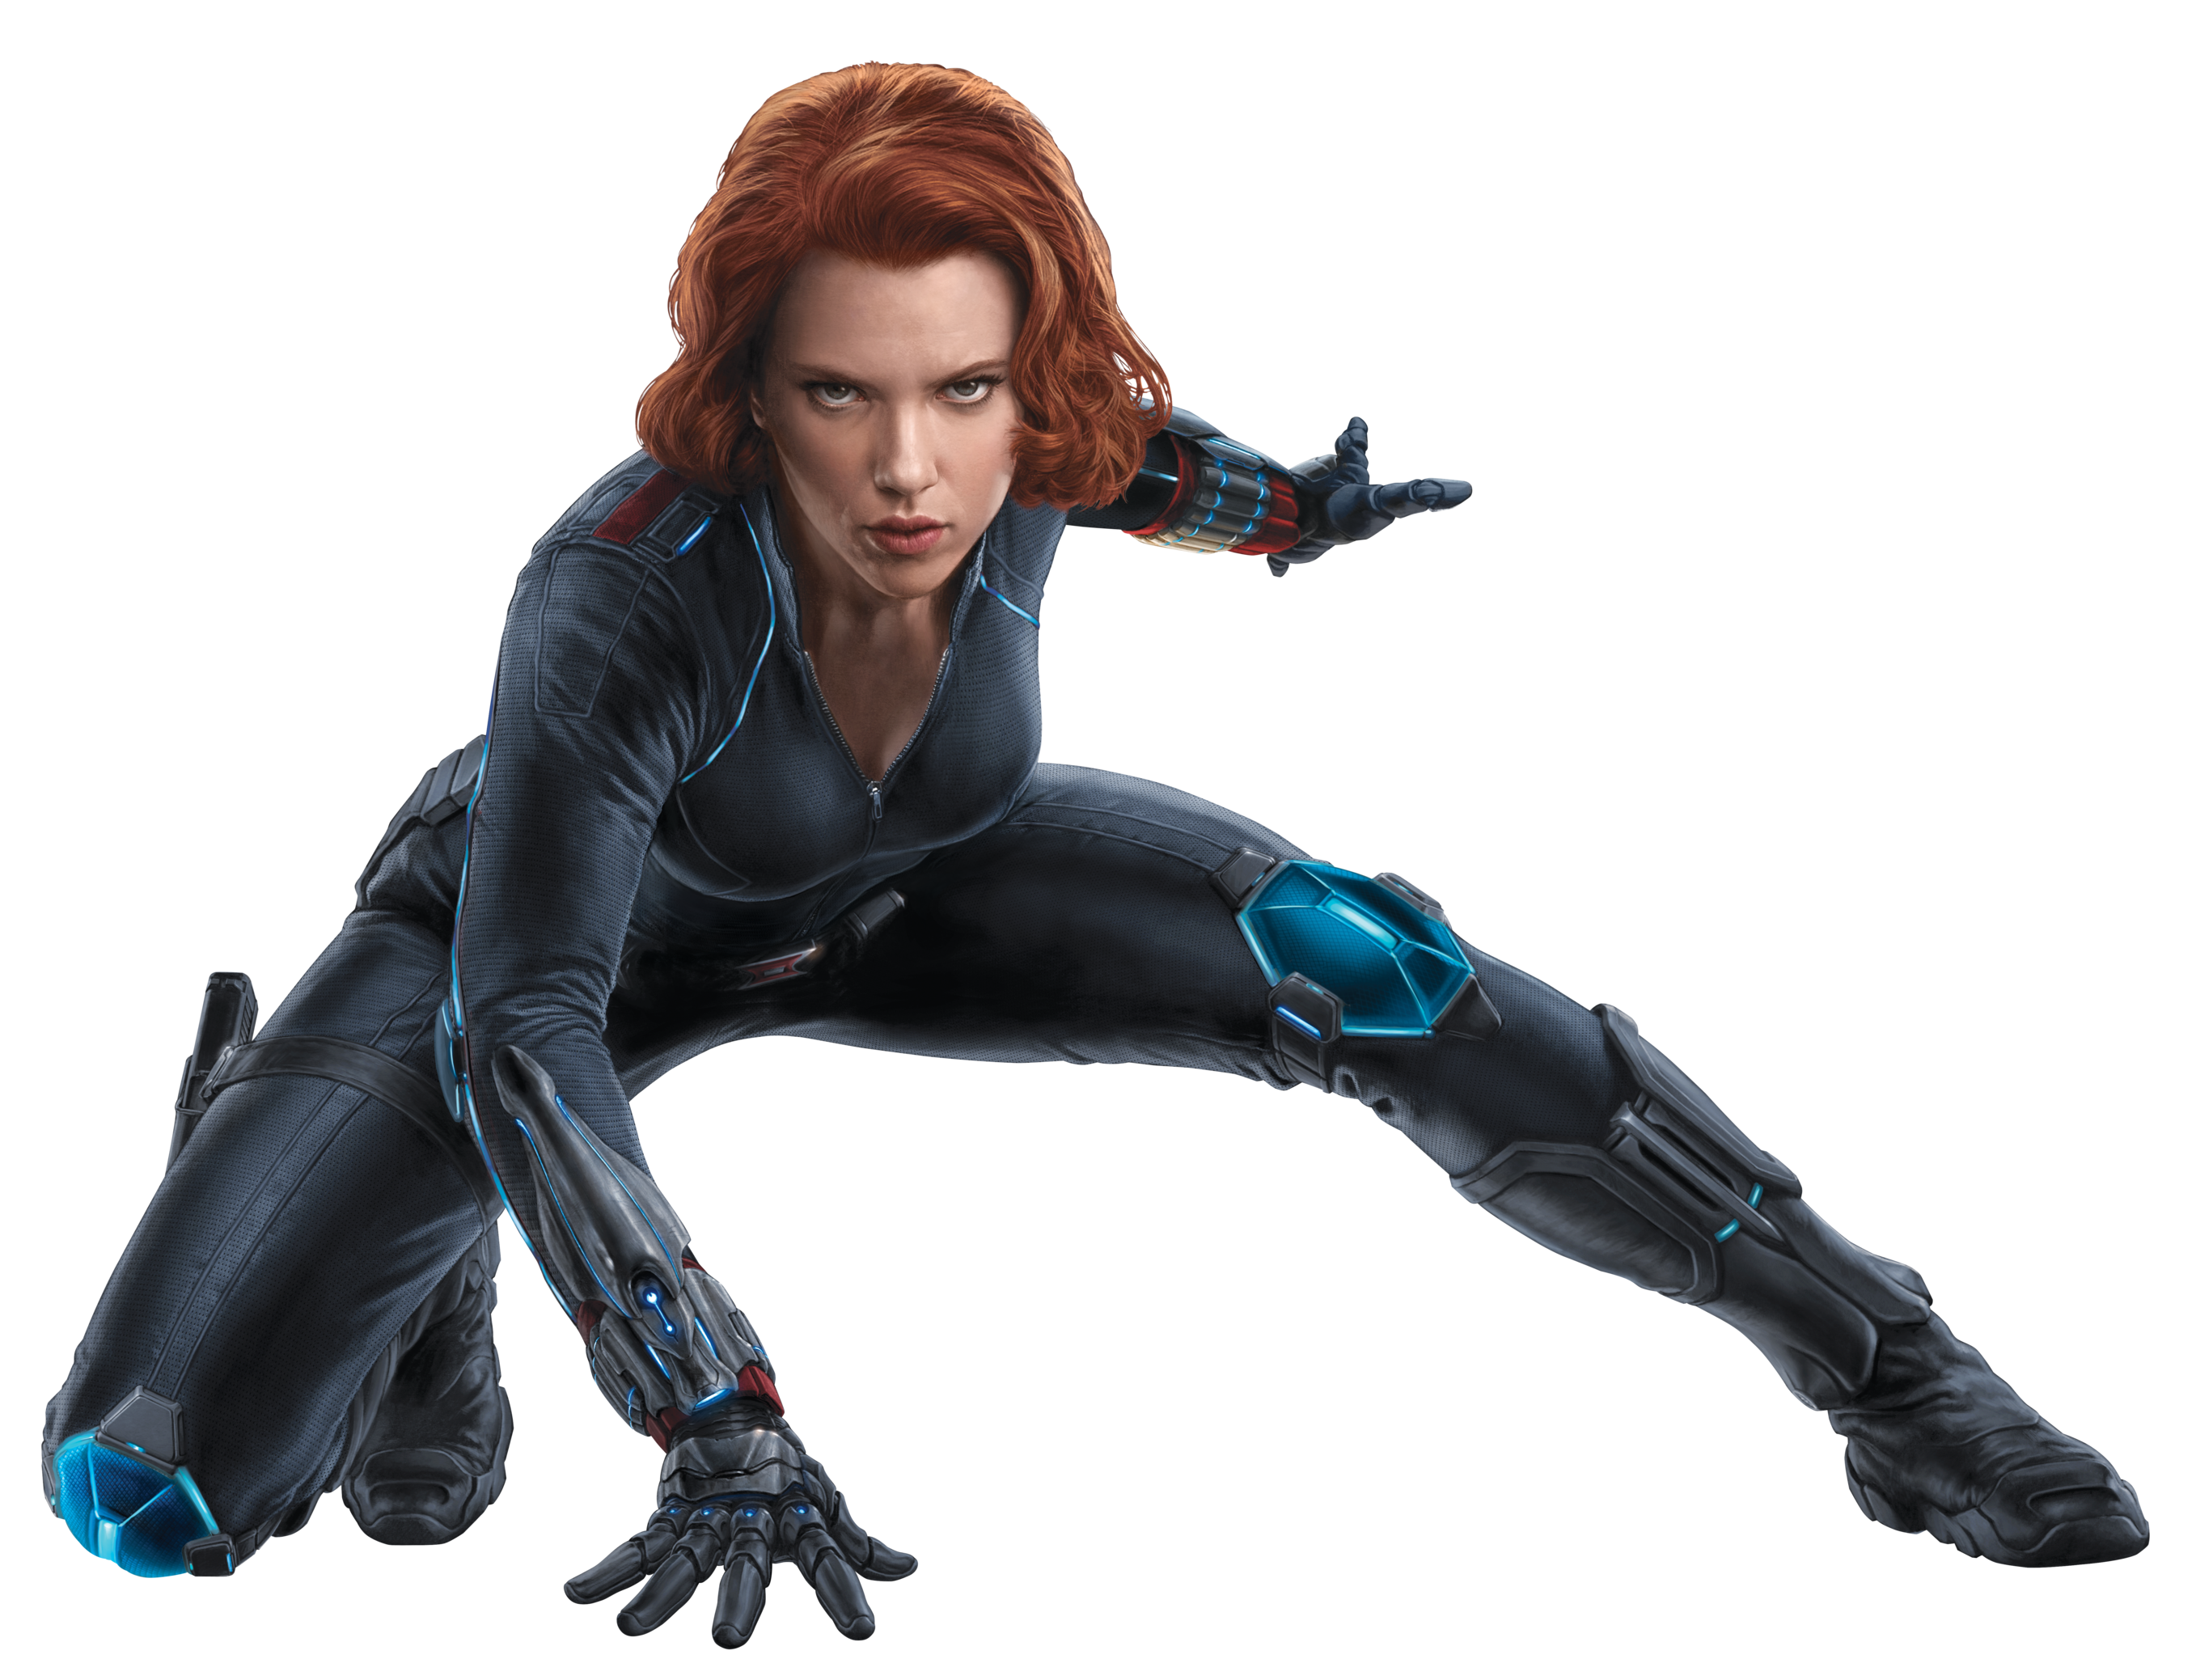 Png 2715x2077 Black Widow Transparent Background - Black Widow PNG